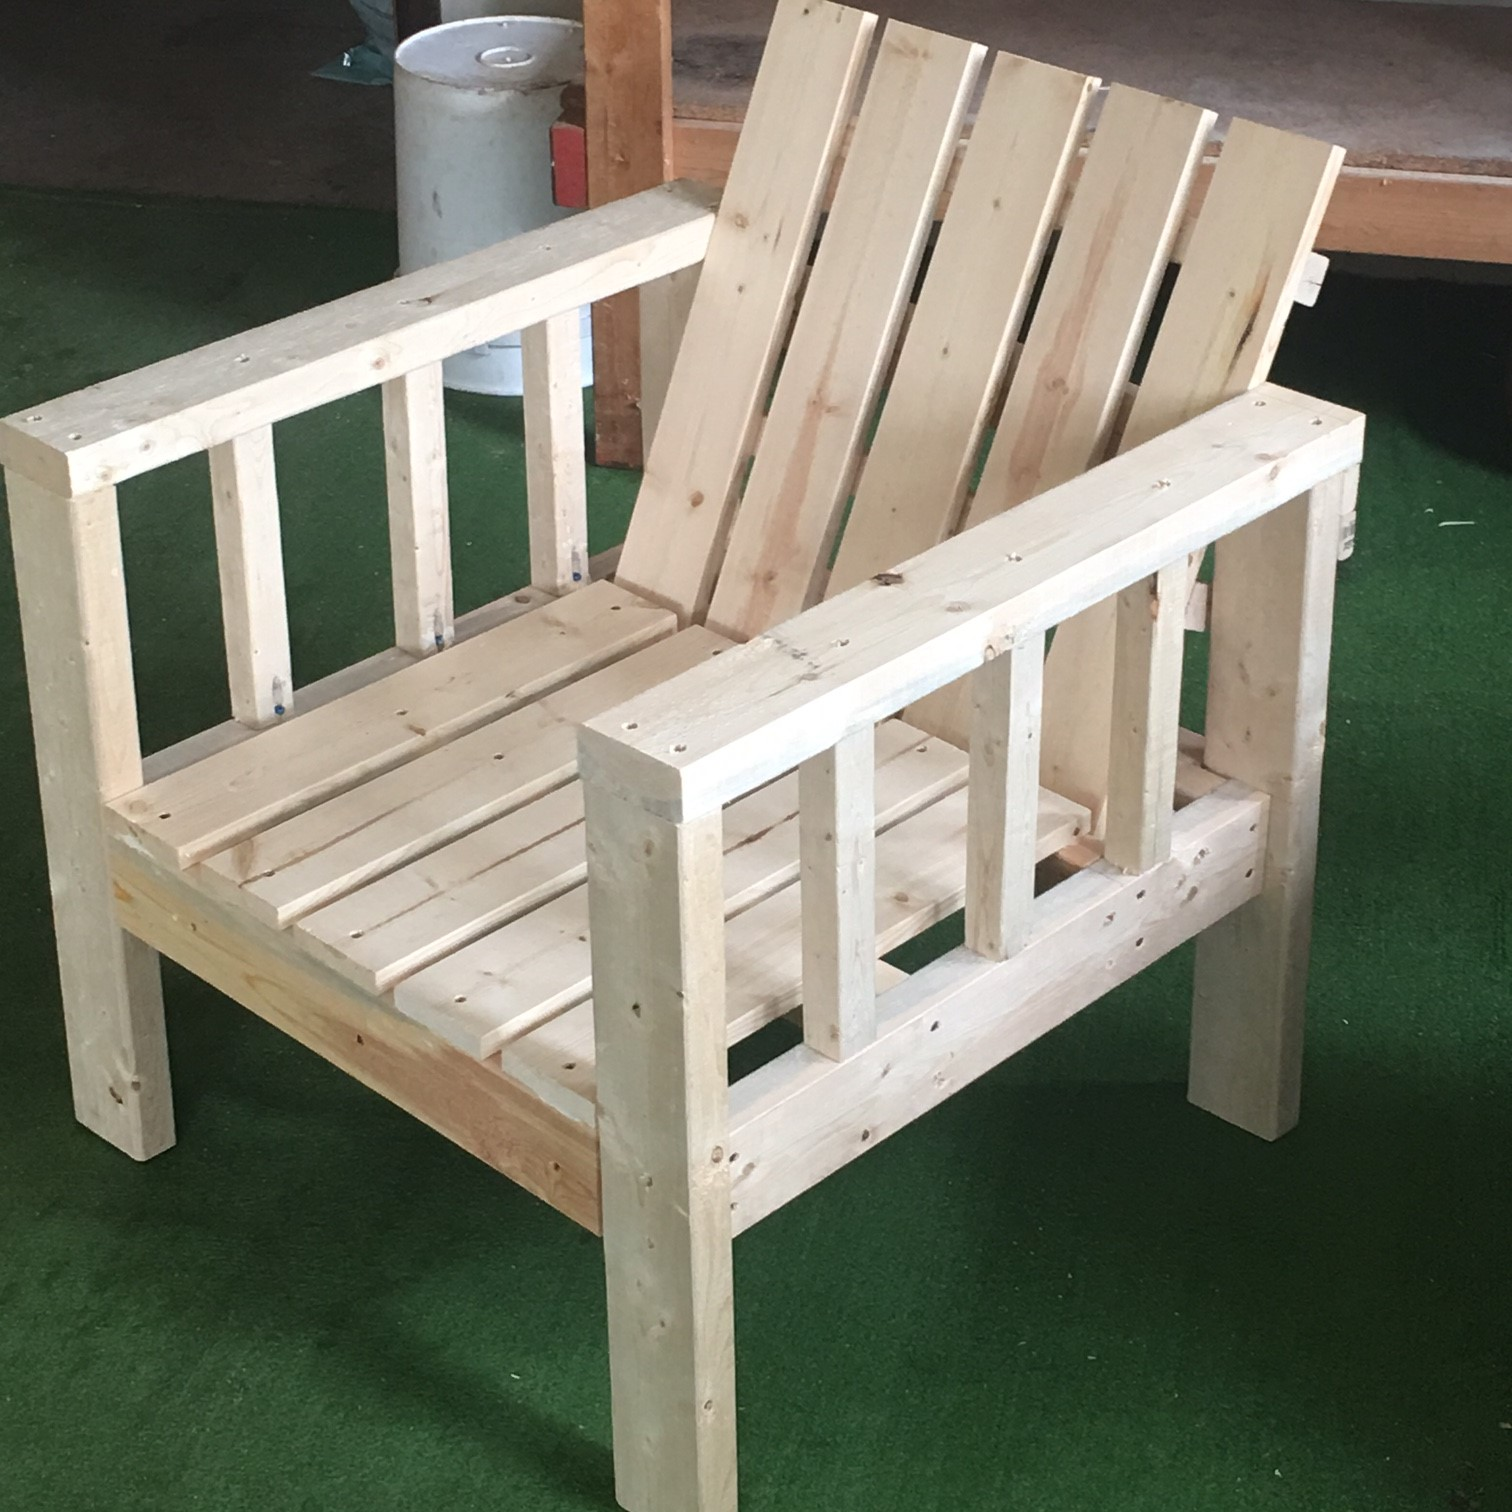 White Outdoor Lounge Chair My Simple Outdoor Lounge Chair With 2x4 Modification Ana White